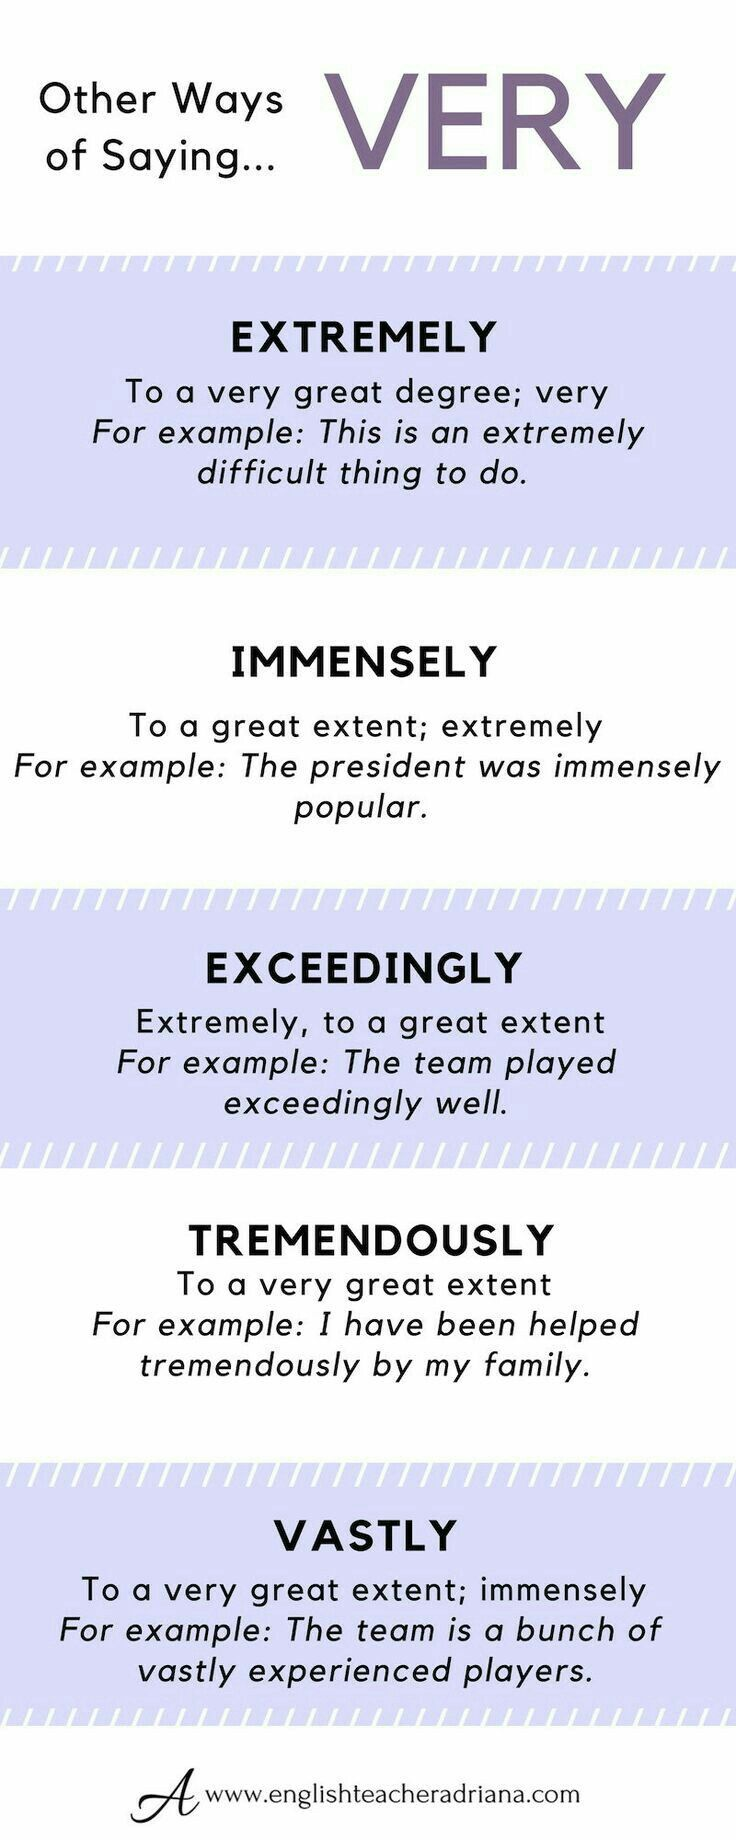 English Vocabulary and Words to help you speak English